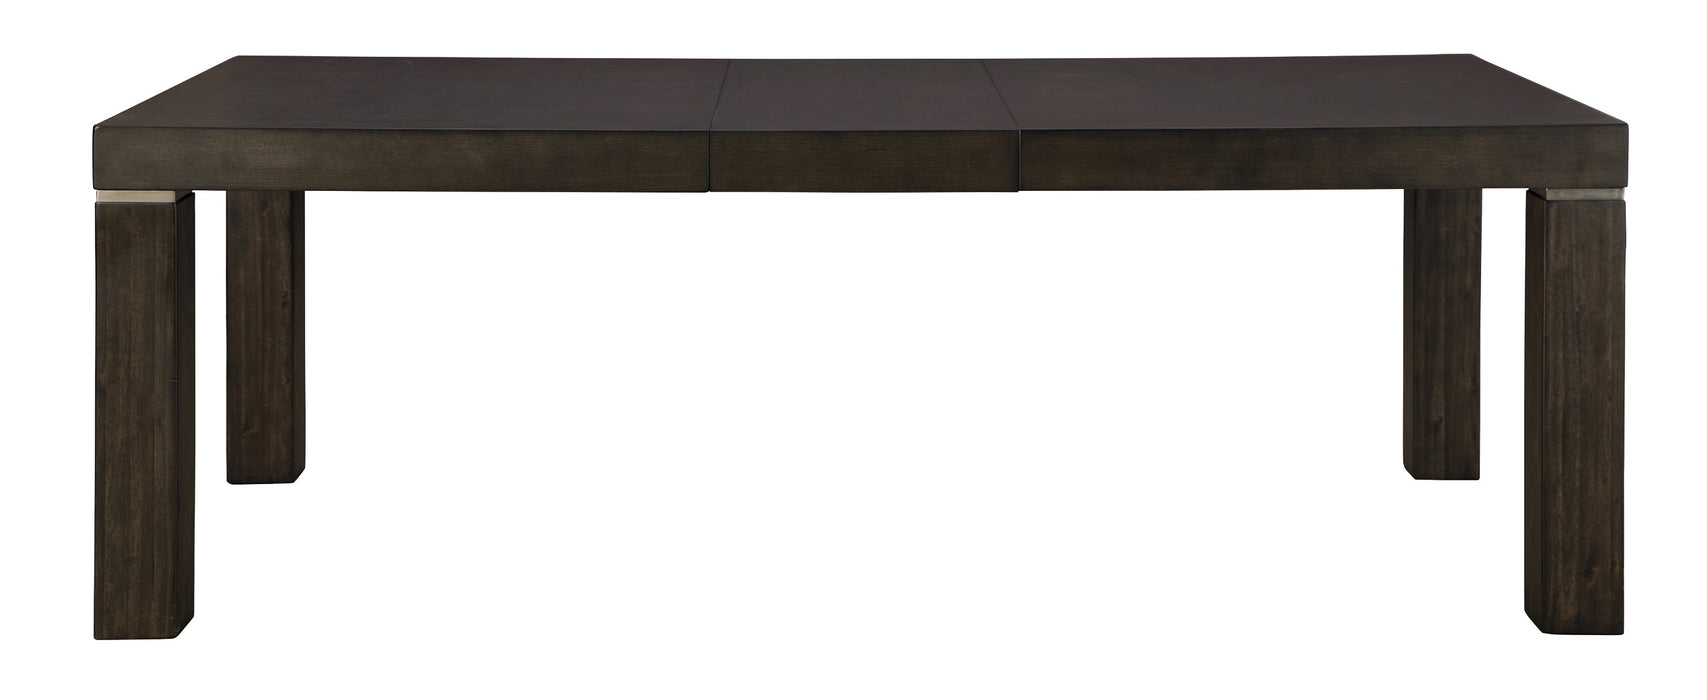 Hyndell Signature Design by Ashley Dining Table image